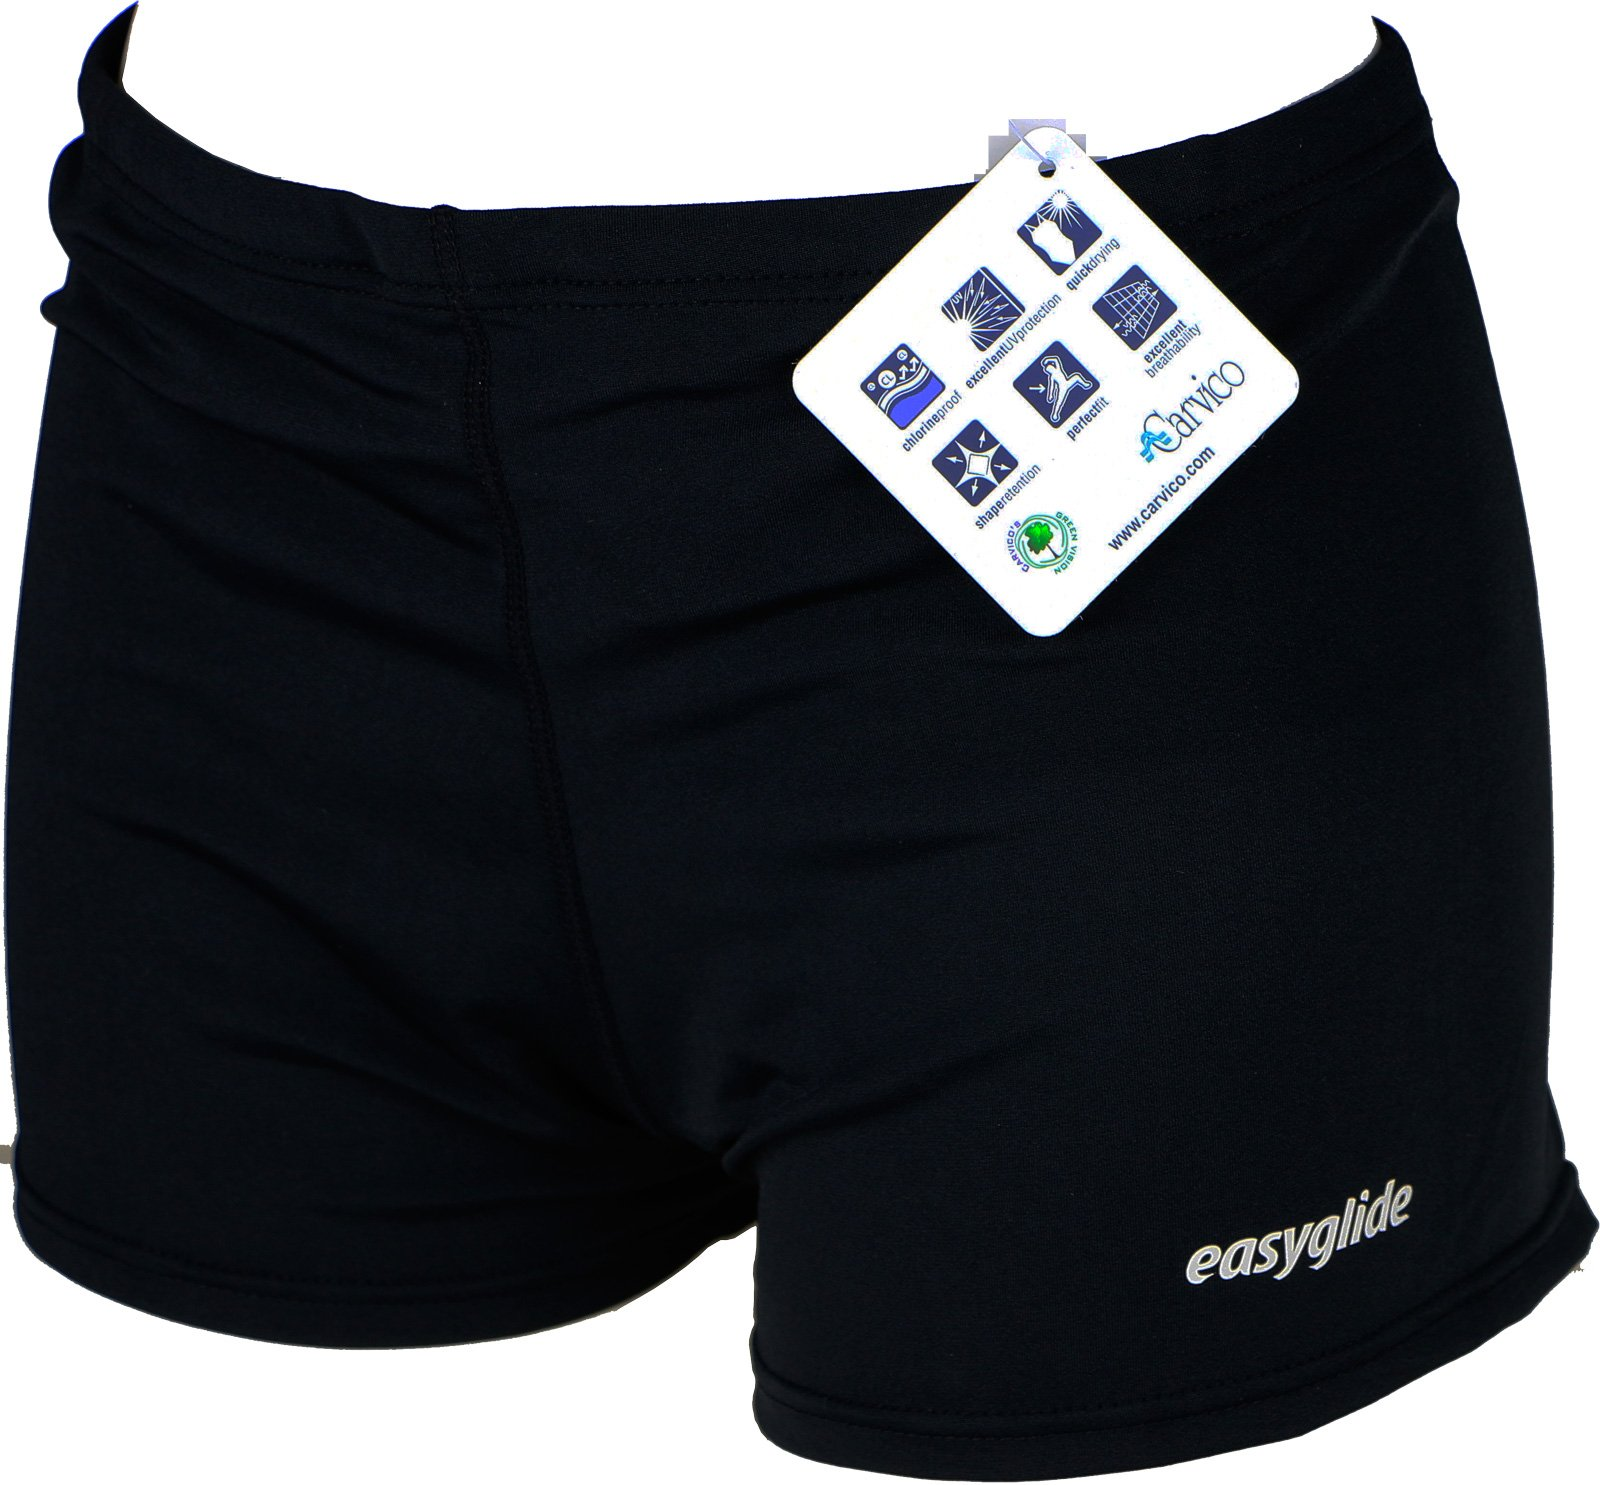 Easyglide Square Leg Suit Mens Swimsuit for PBT Fabric (34) by Easyglide